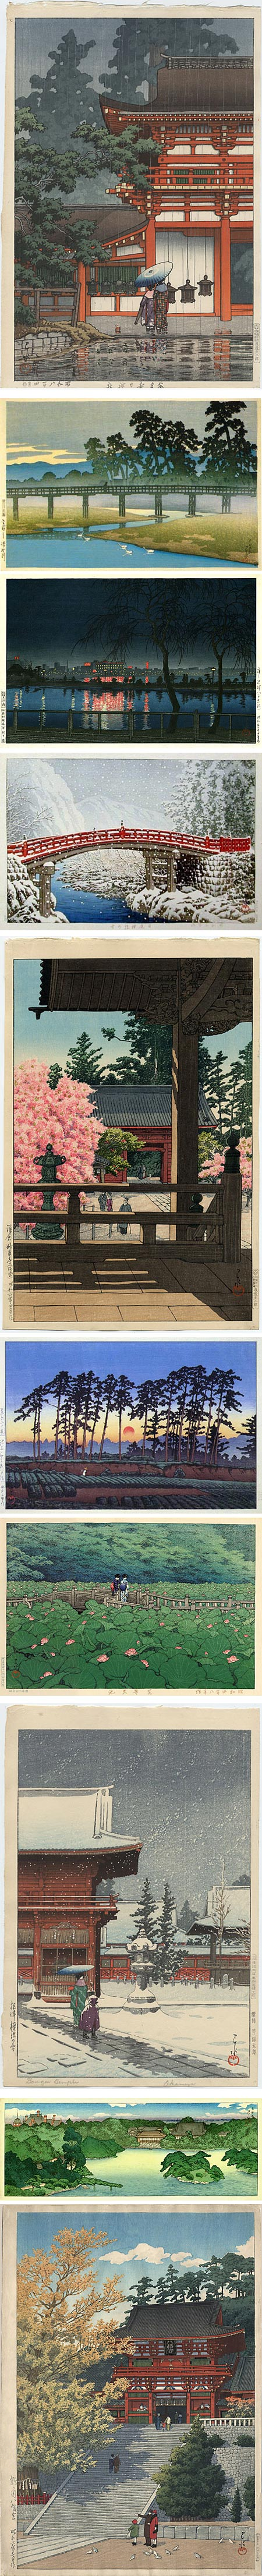 Kawase Hasui